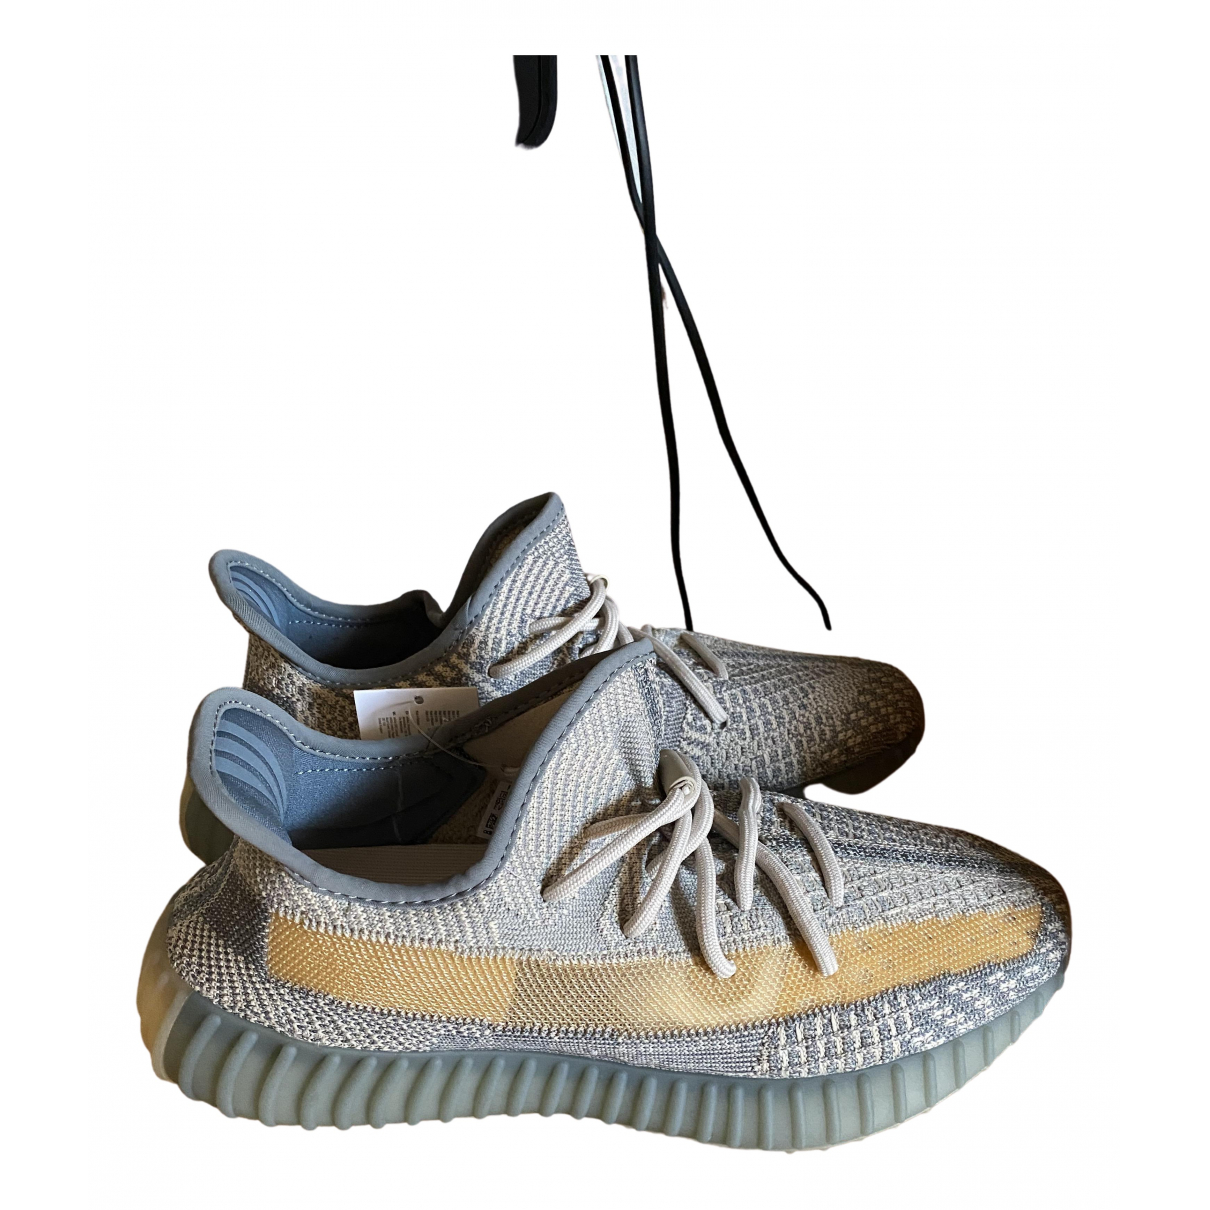 Yeezy X Adidas Boost 350 V2 Boots for Men 9 UK